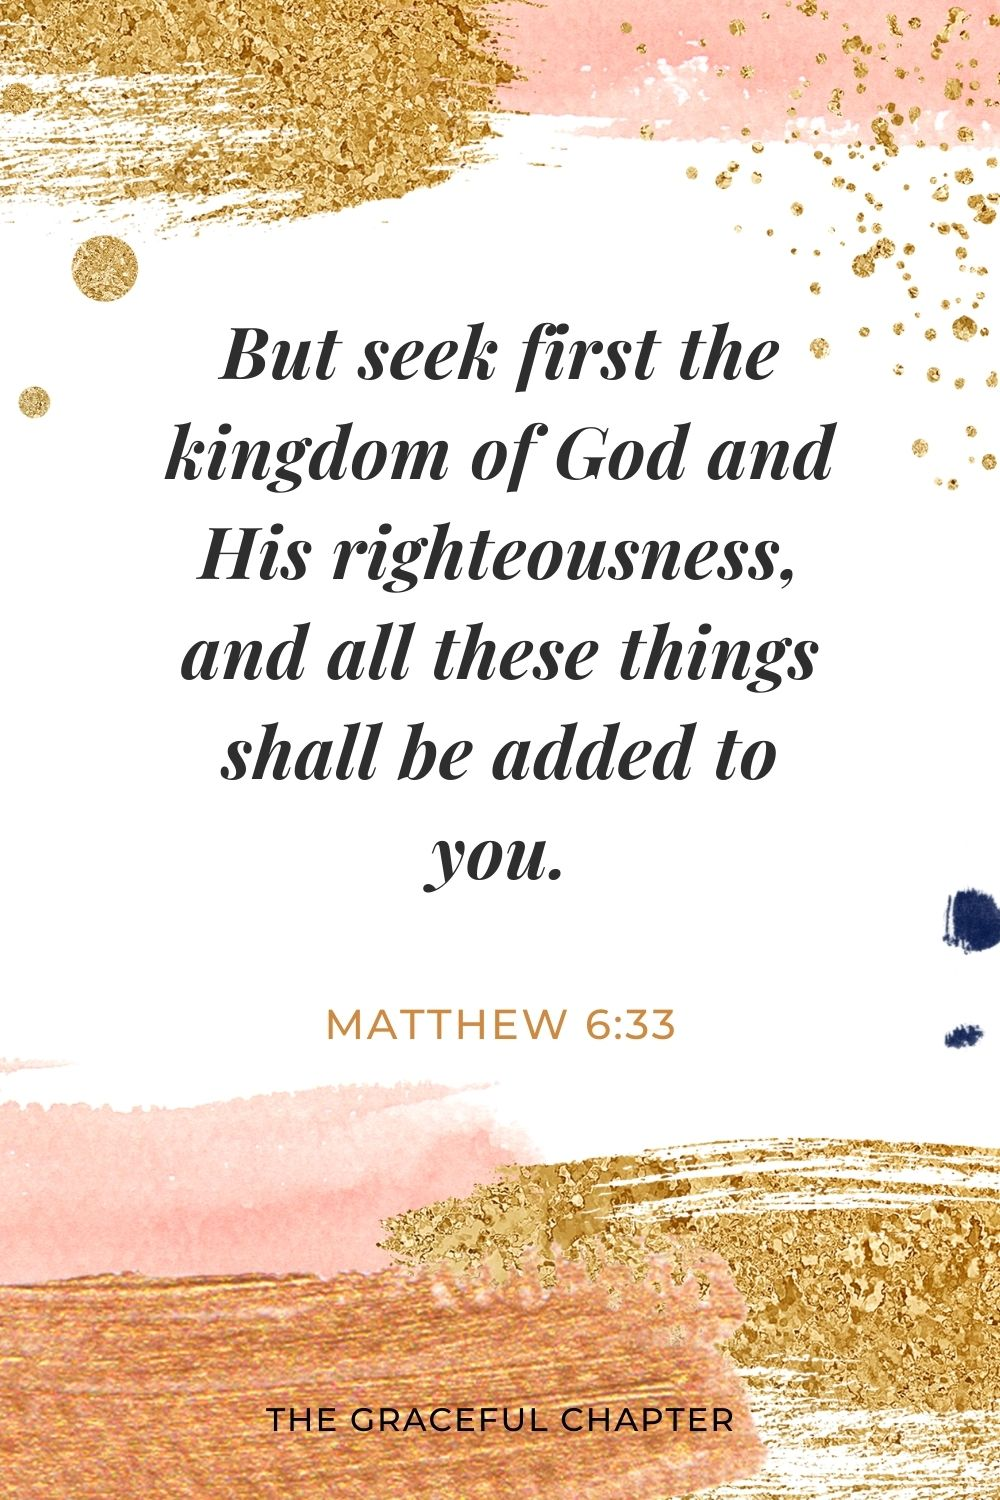 But seek first the kingdom of God and His righteousness, and all these things shall be added to you. Matthew 6:33